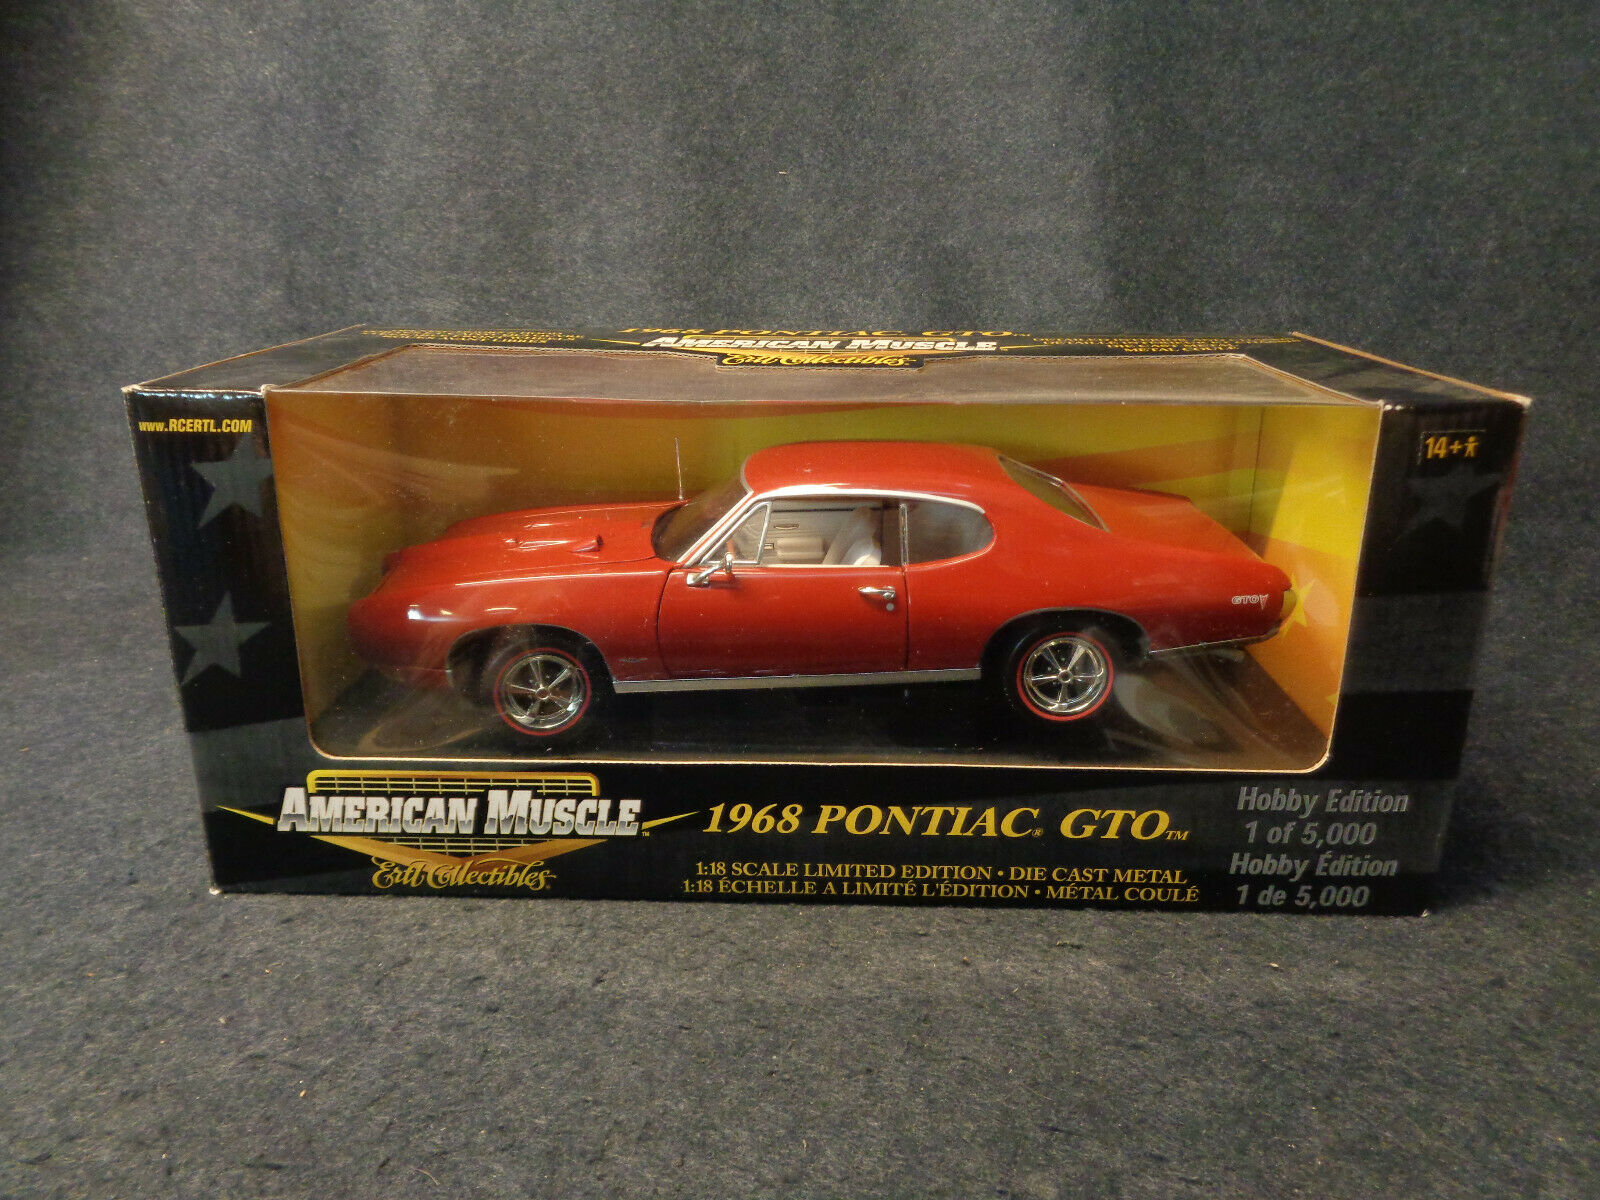 1968 PONTIAC GTO - AMERICAN MUSCLE ERTL COLLECTIBLES DIE CAST SCALE 1 18 -L13-FL